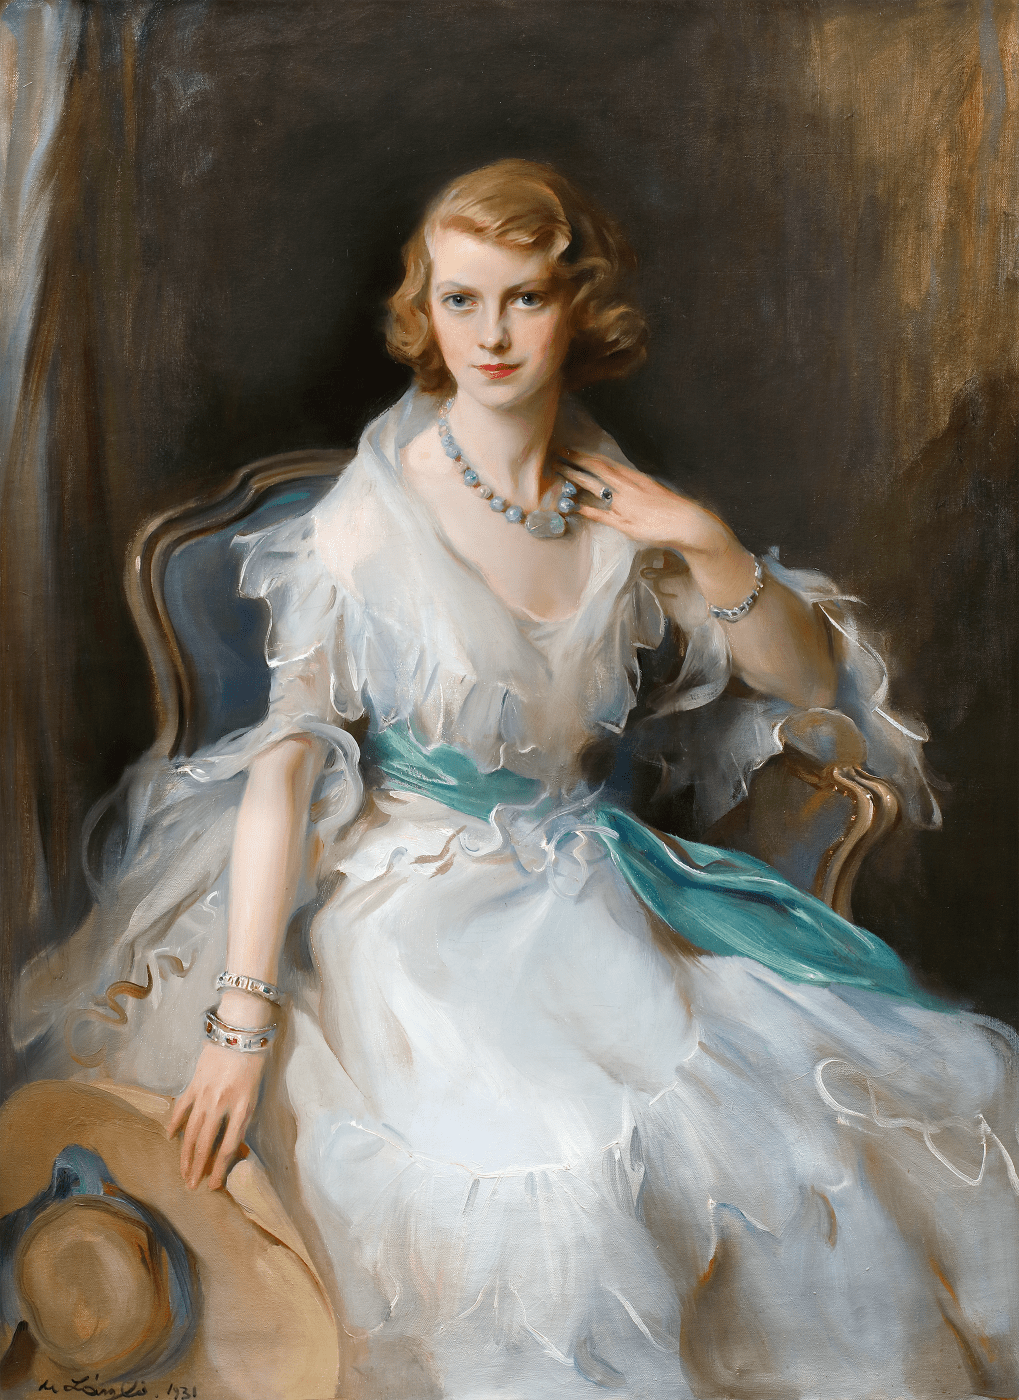 portrait painting of Onnagh Guinness sitting in white fashionable dress by modern british artist Philip de Laszlo